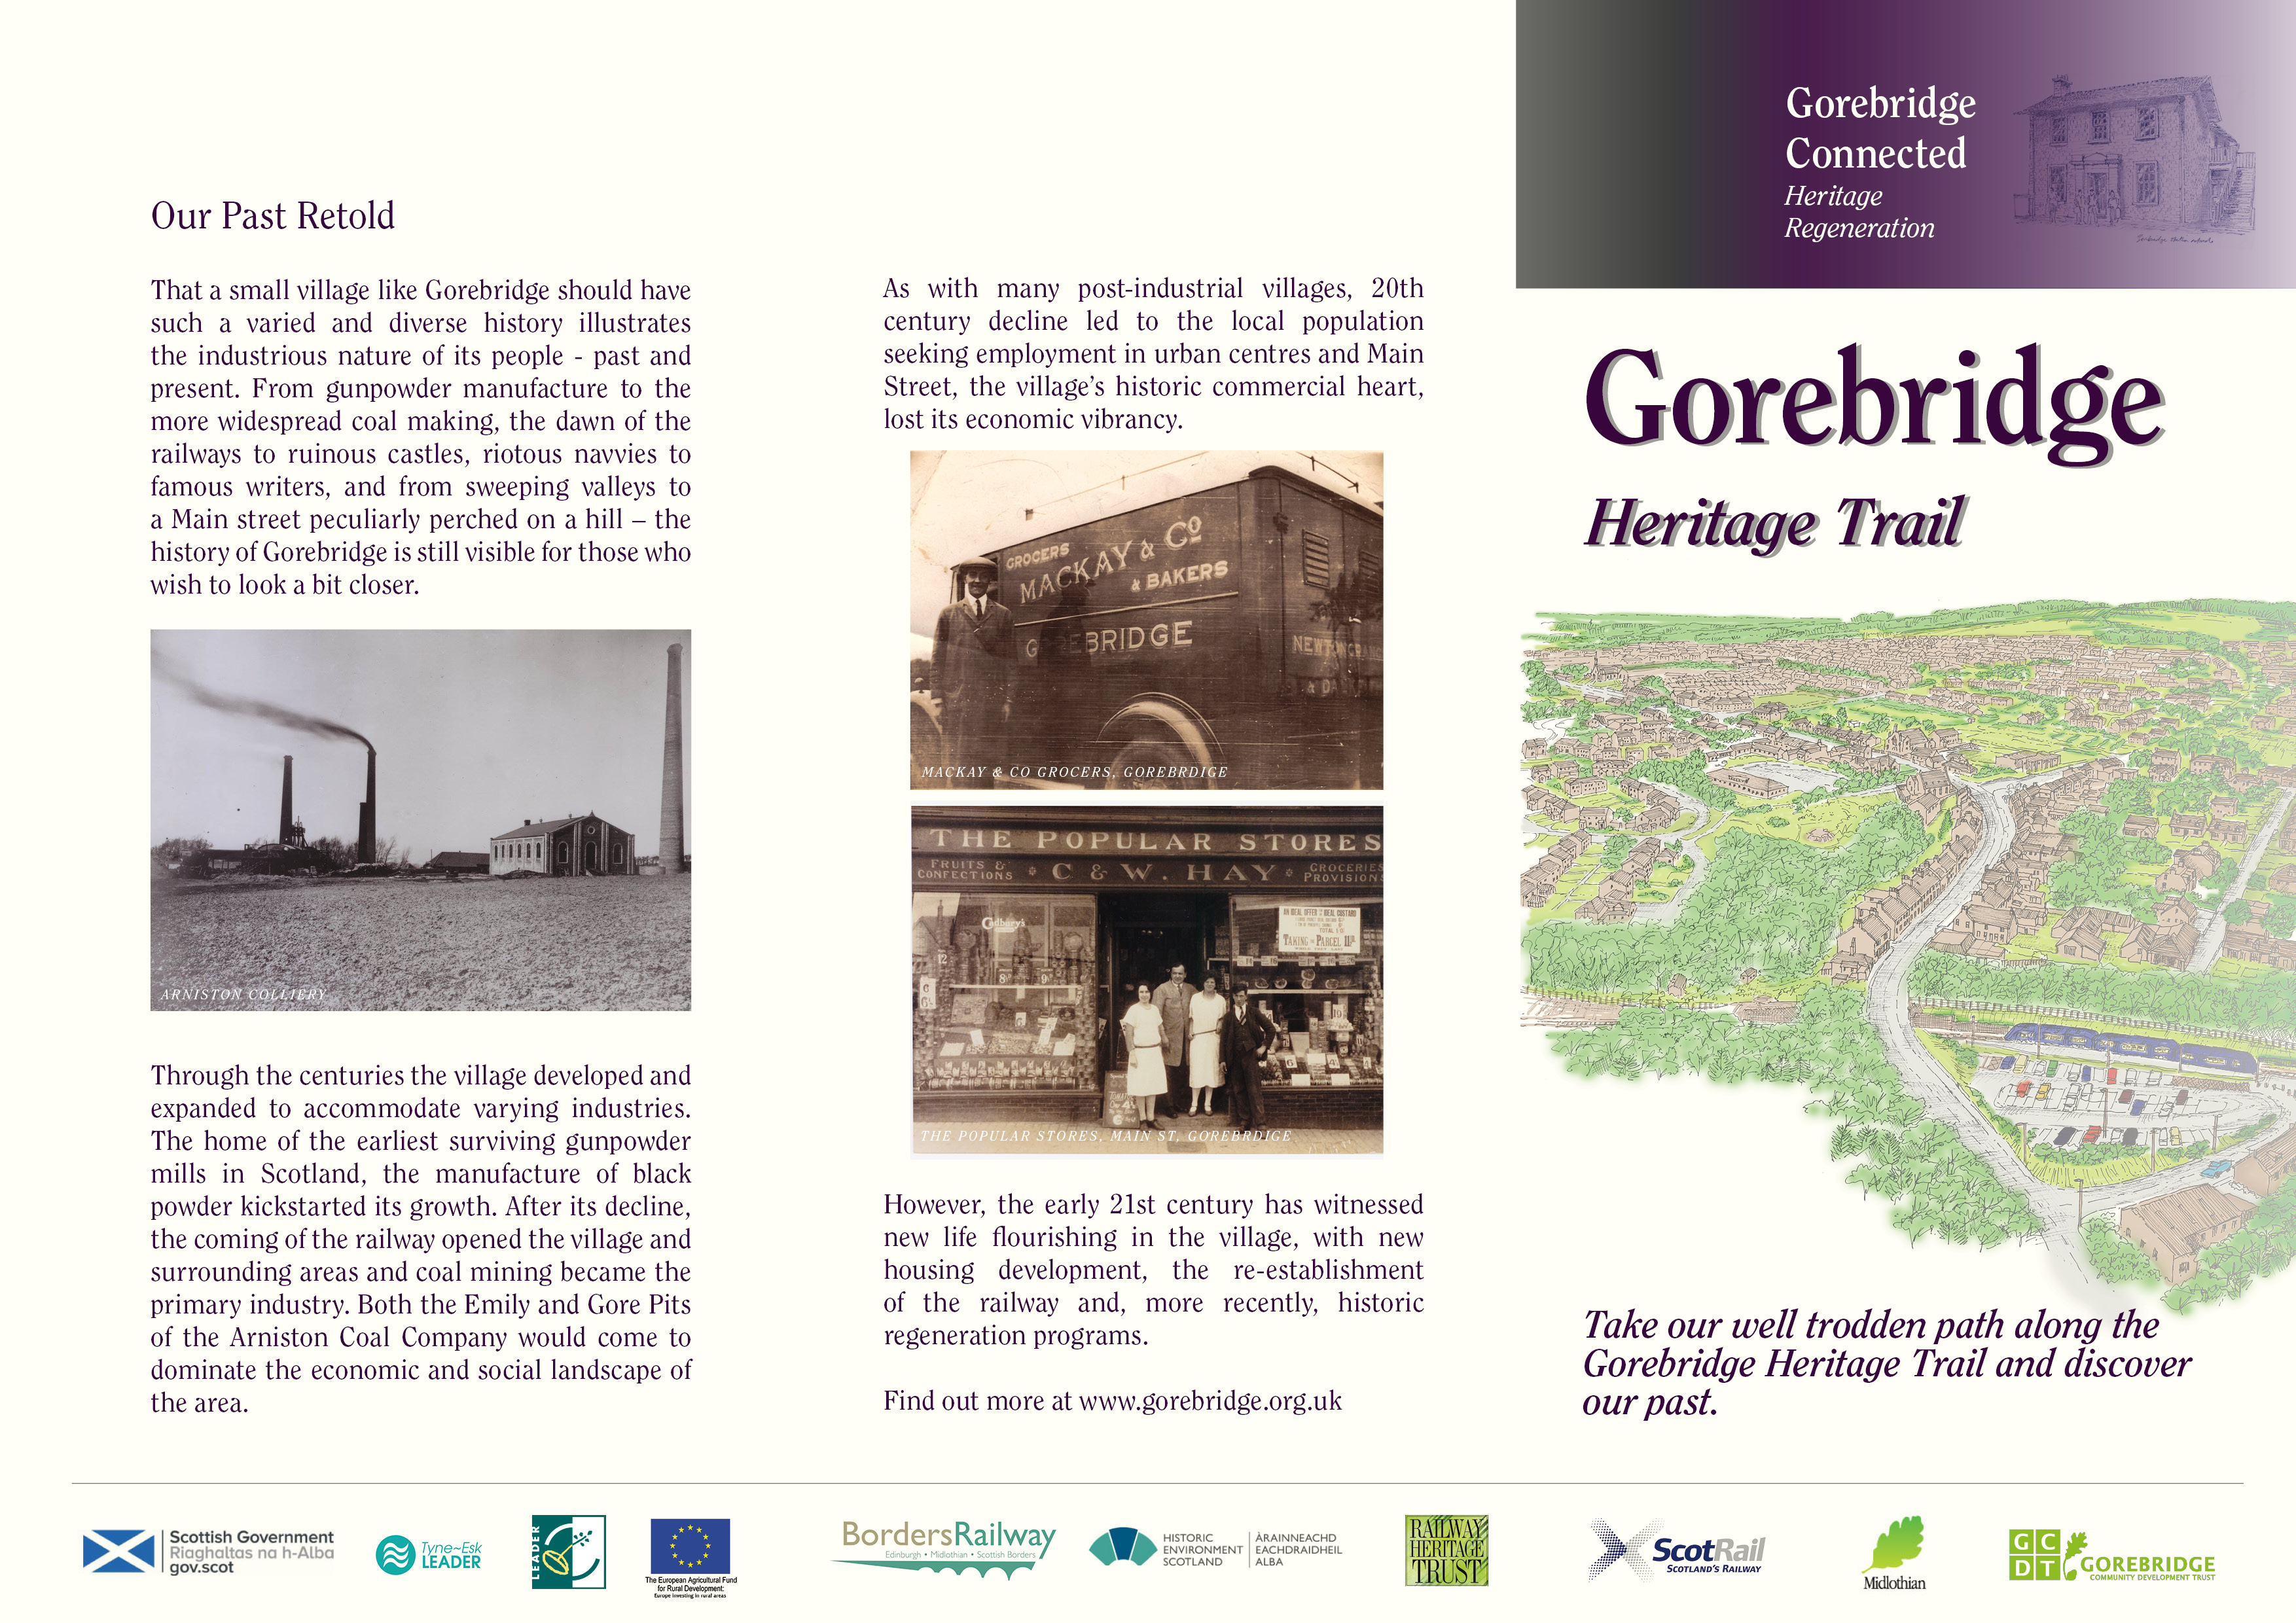 Gorebridge brochure 181102 pg 2